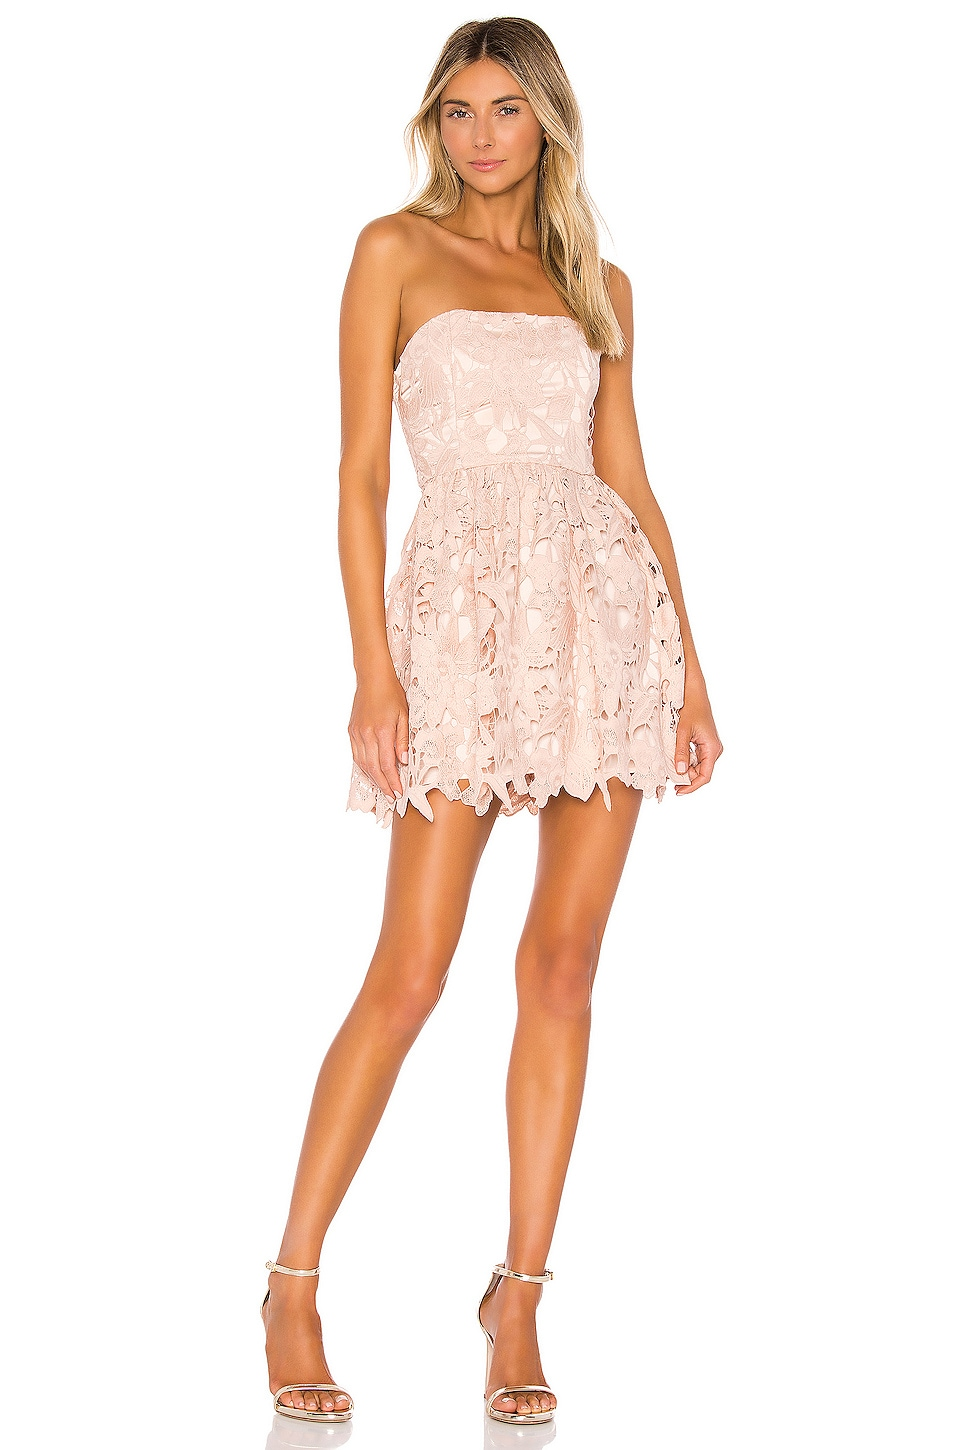 Michael Costello x REVOLVE Tate Dress in Blush